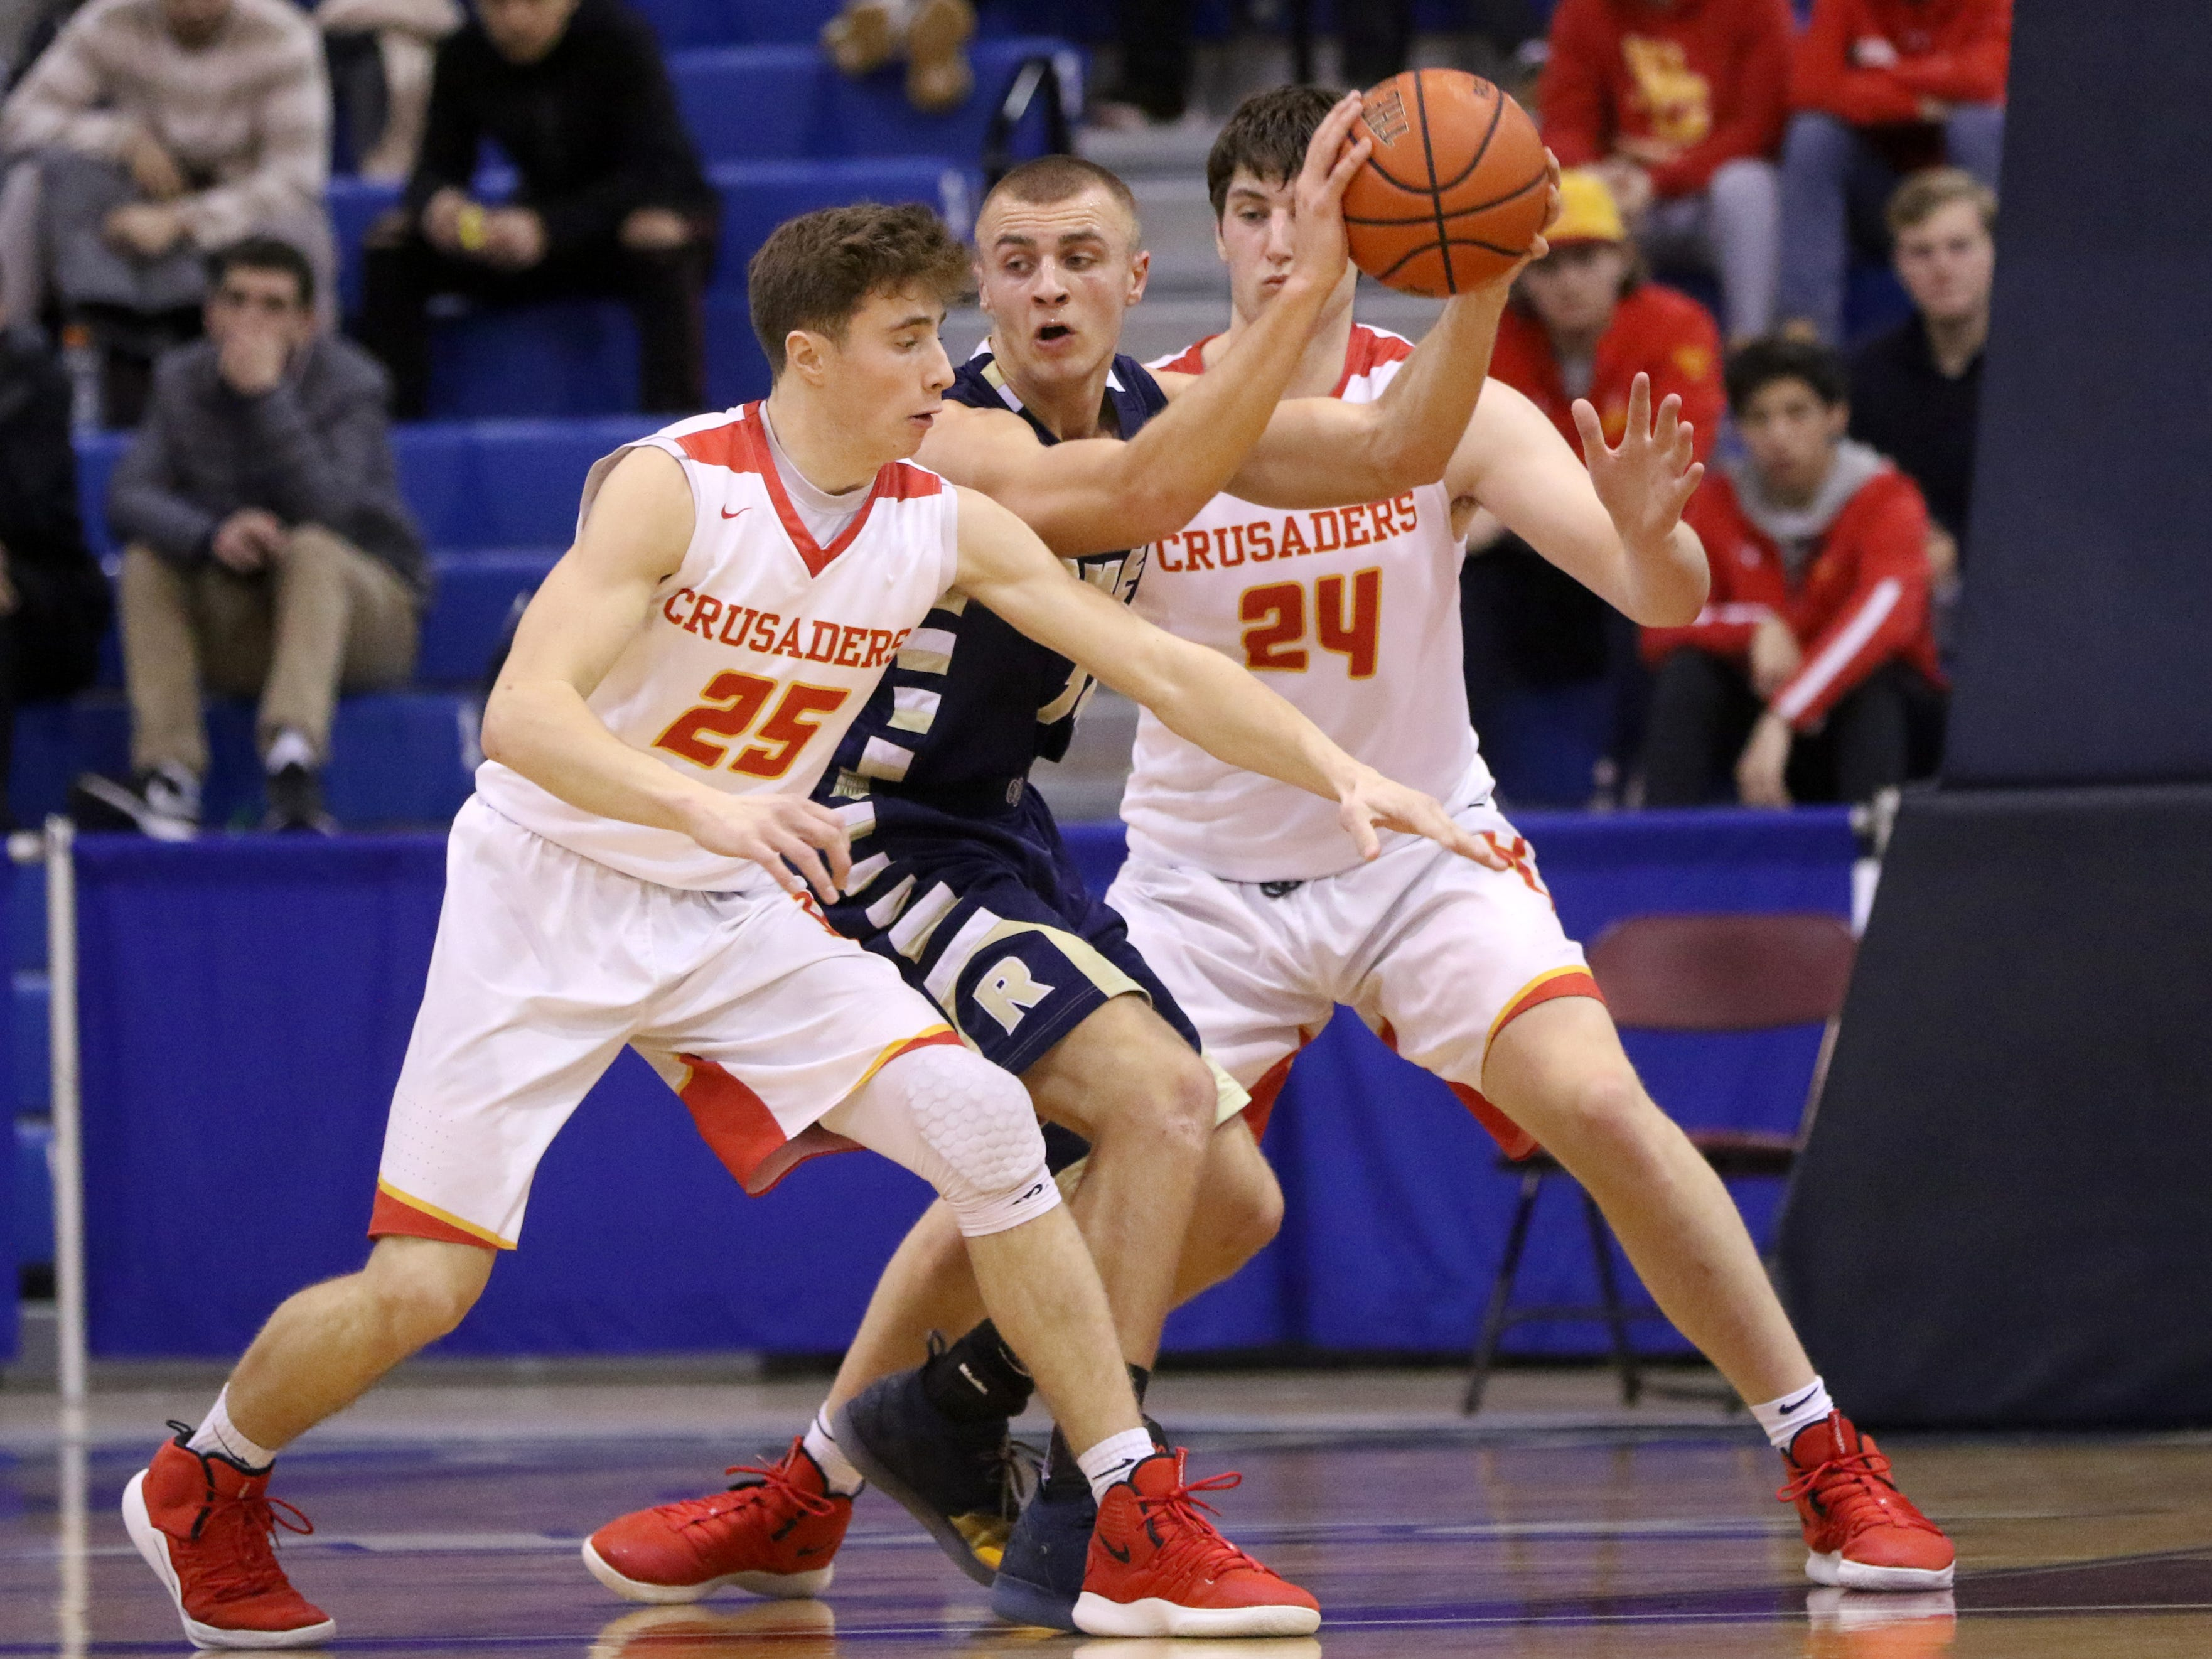 Kevin Foelsch, of Ramsey, tries to get rid of the ball as Doug Edert (25) and Matt Zona (24), both of Bergen Catholic, surround him.  Sunday, February 10, 2019